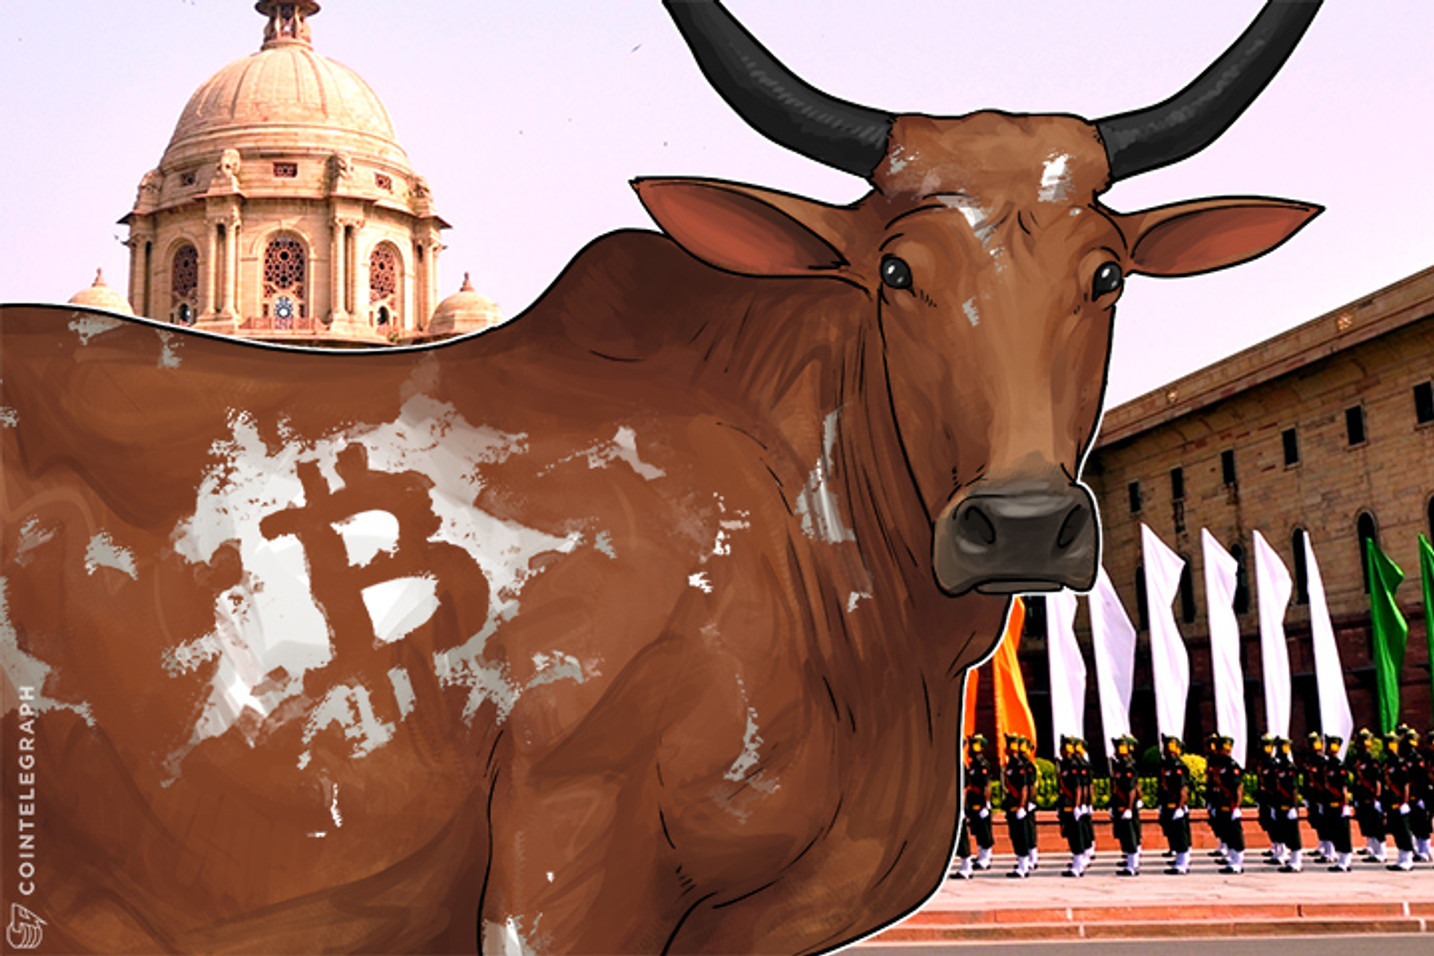 India's Demonetization: Cash is Not Holy Cow, in Bitcoin Blockchain We Trust